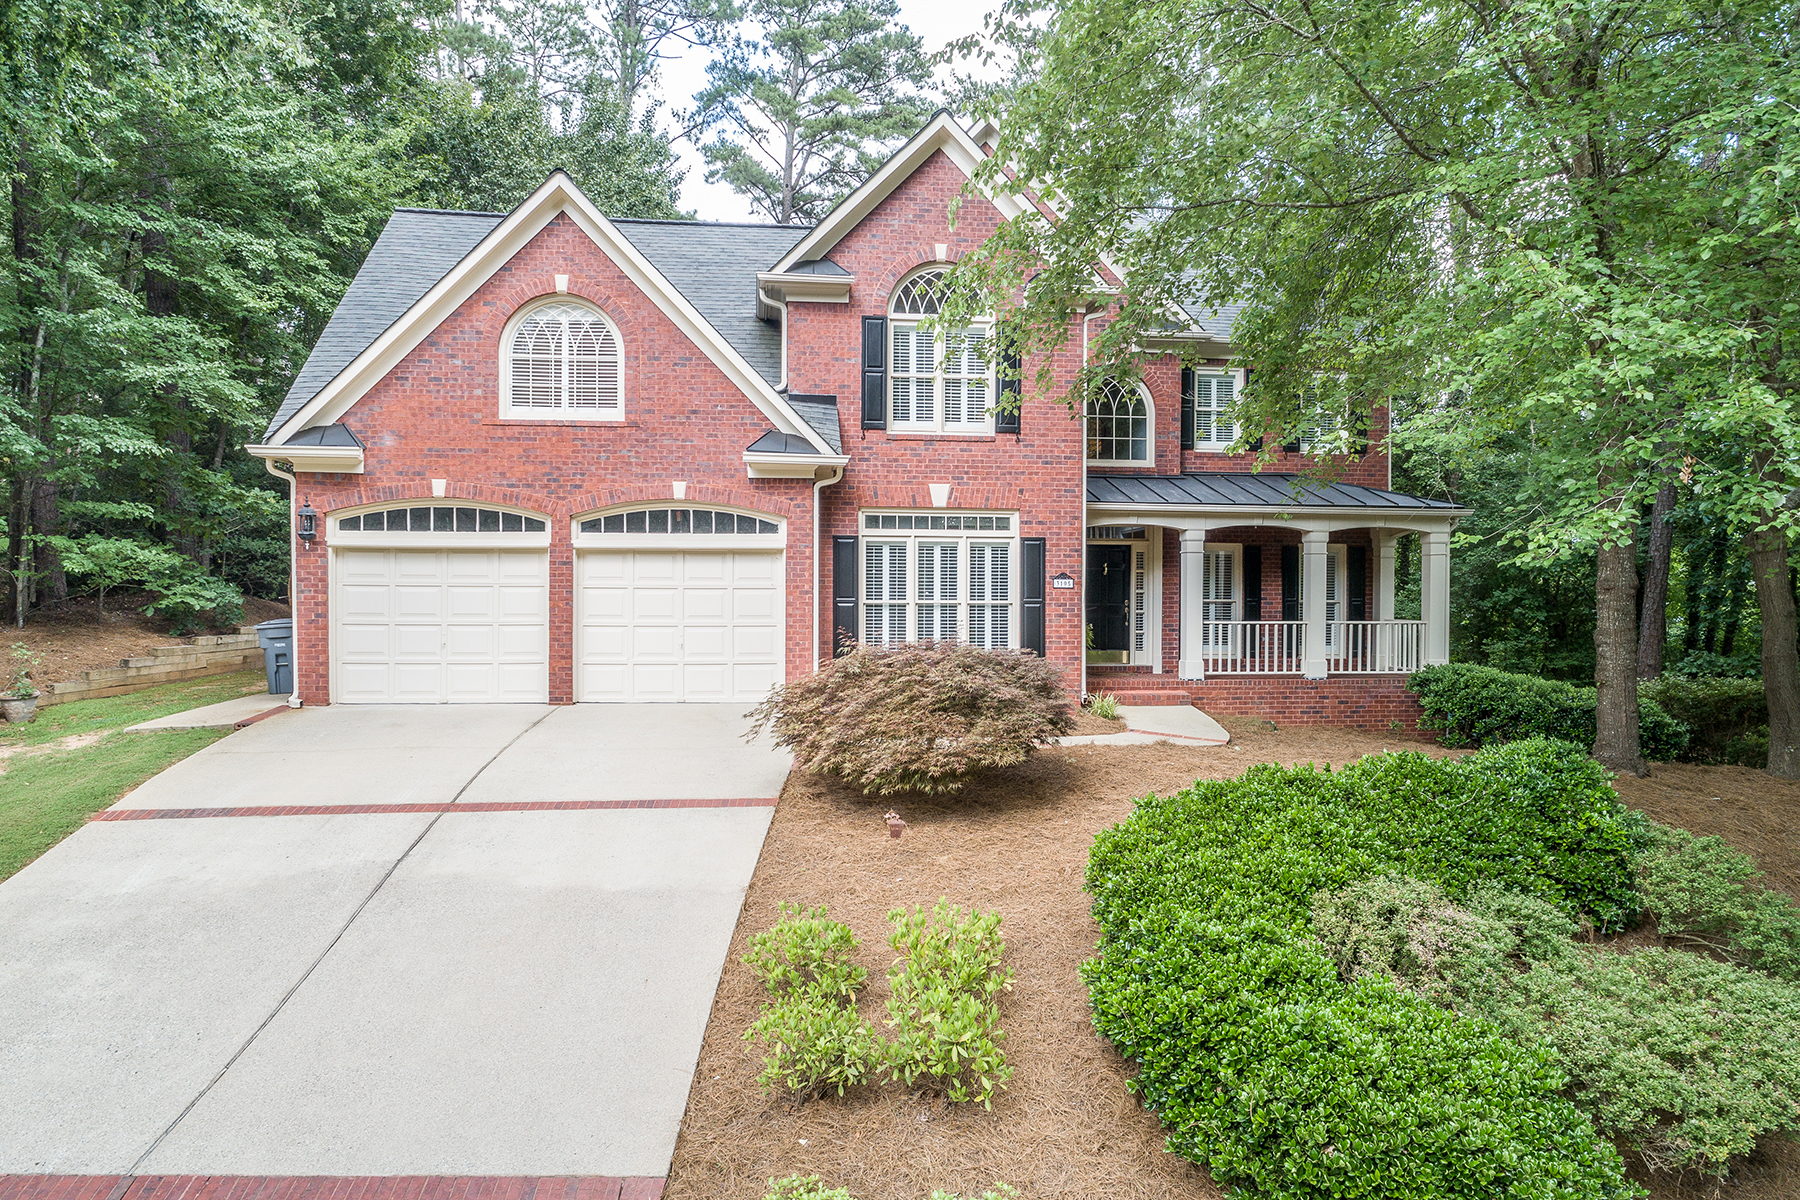 Single Family Home for Sale at Live Bywater 3105 Bywater Trail Roswell, Georgia 30075 United States